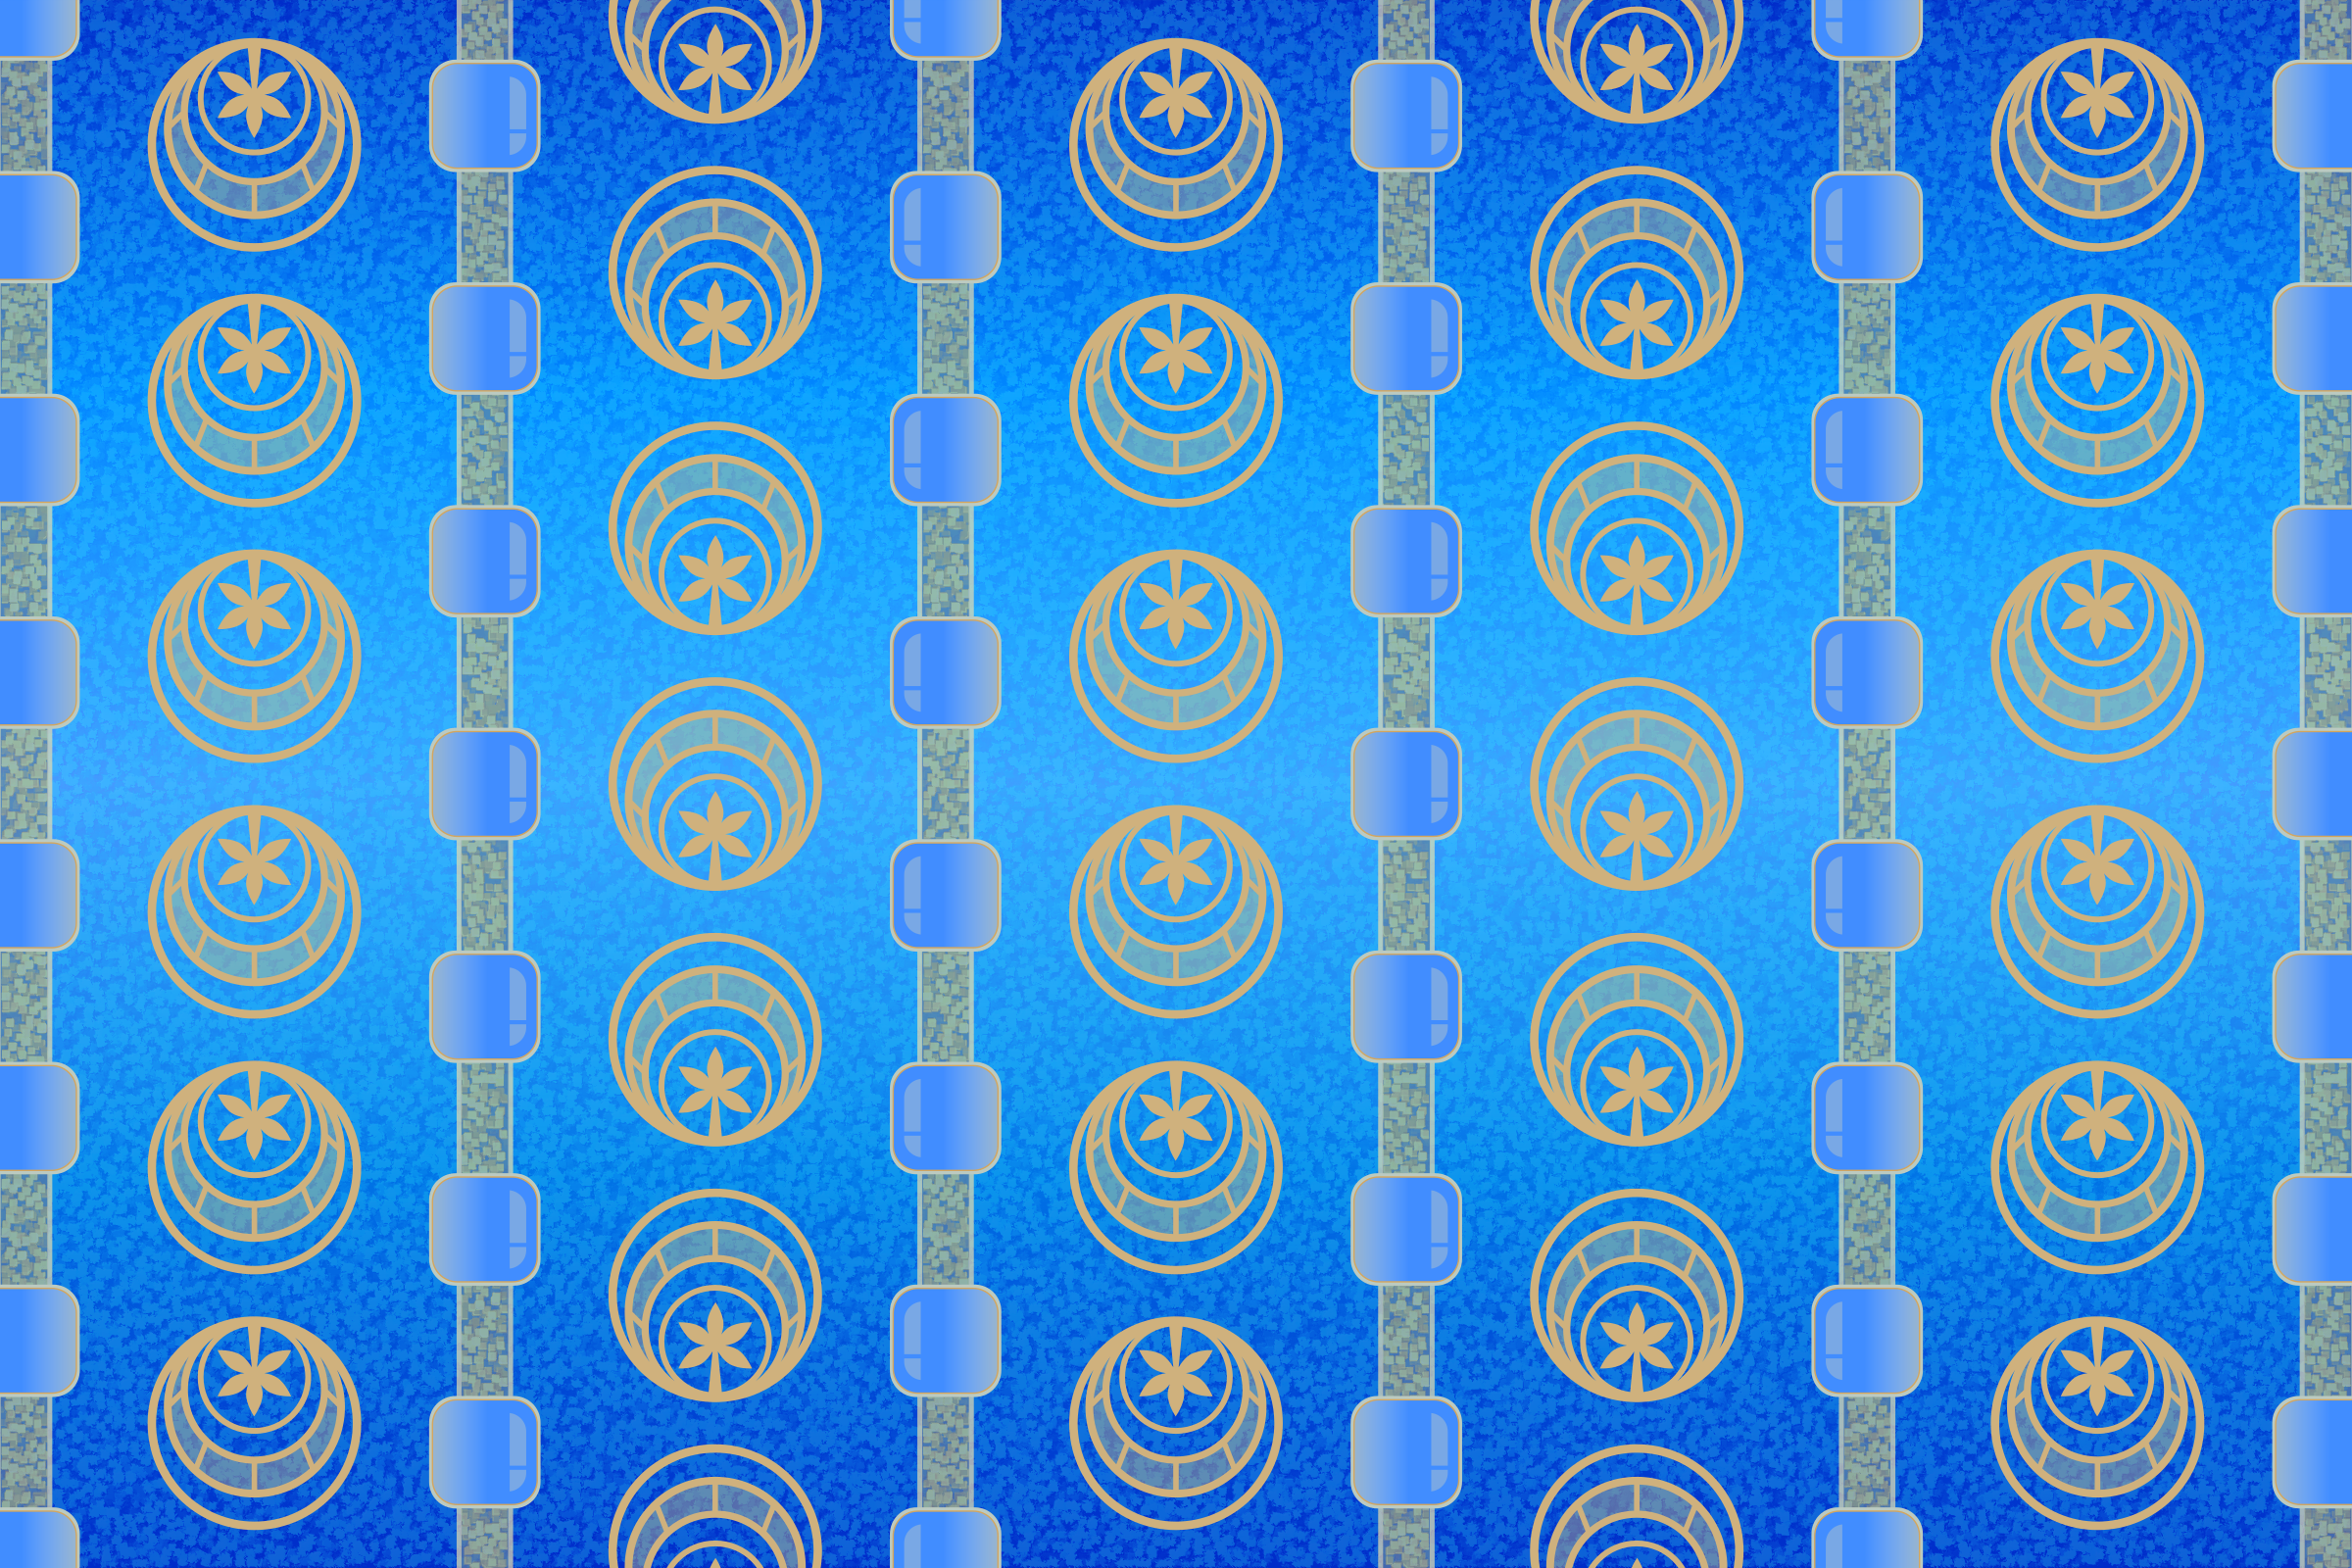 Background Patterns - Cerulean by Viscious-Speed